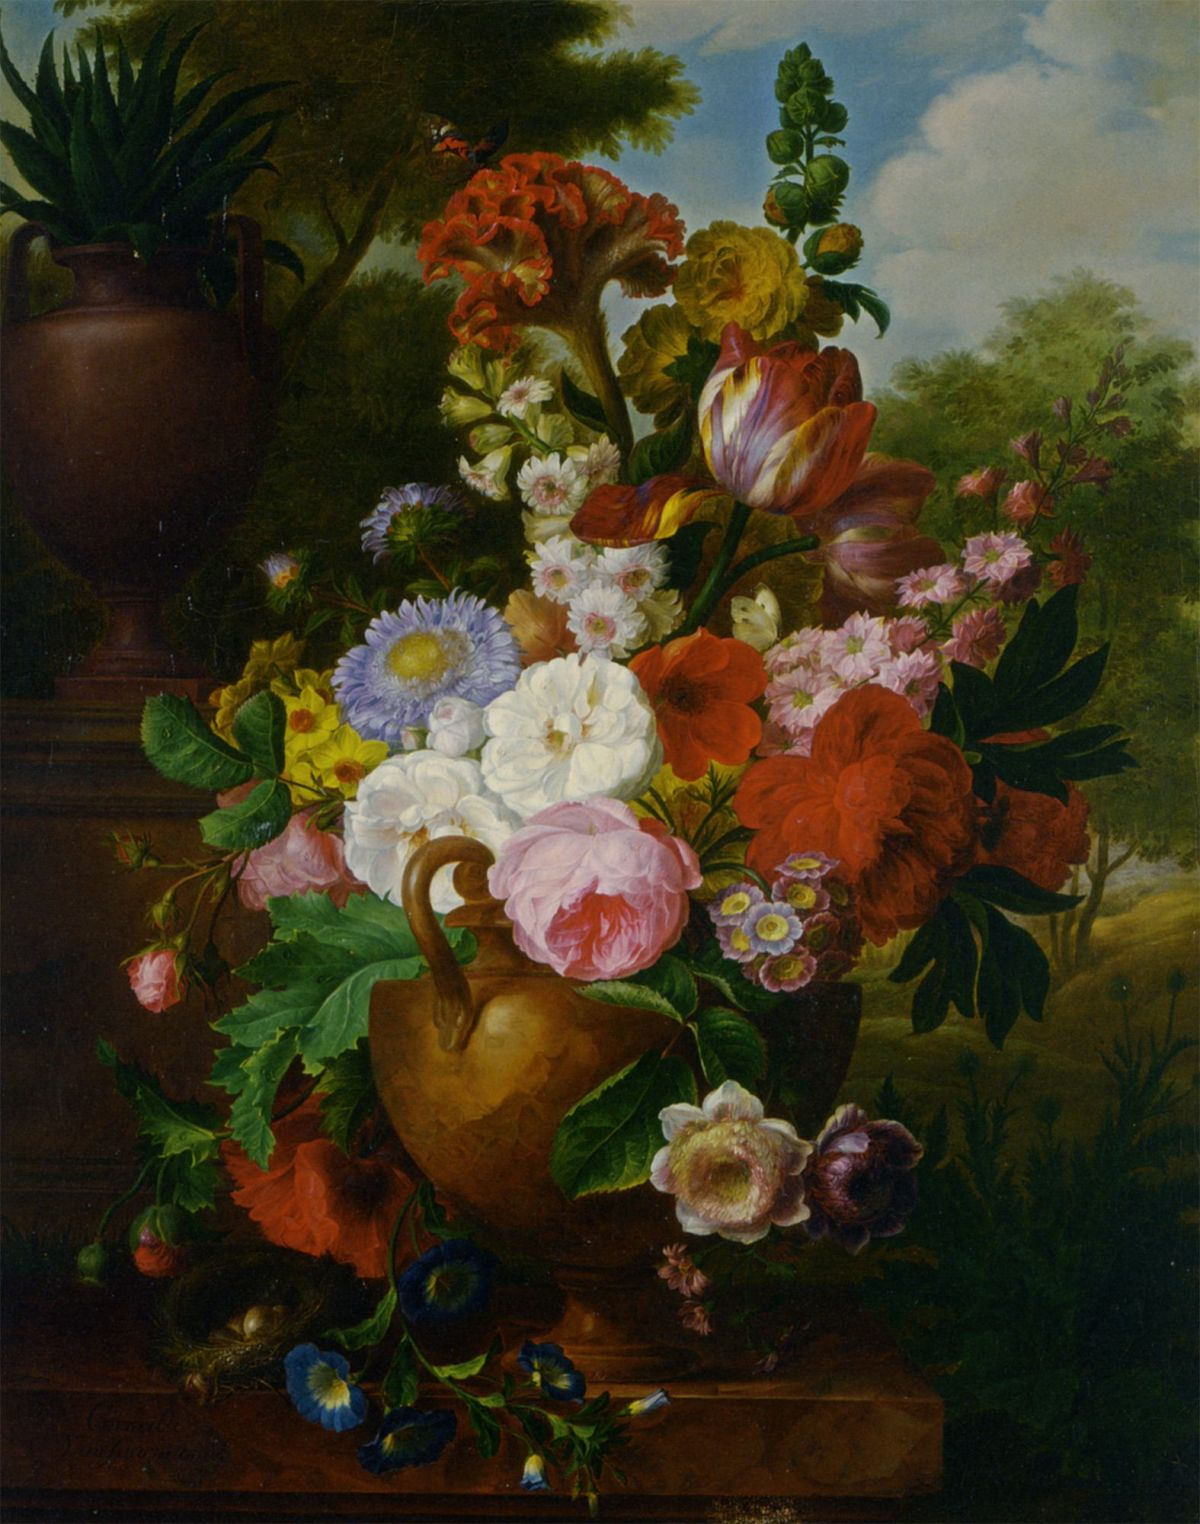 A Flower Still Life with Roses Tulips Peonies and other Flowers in a Vase by Cornelis Van Spaendonck